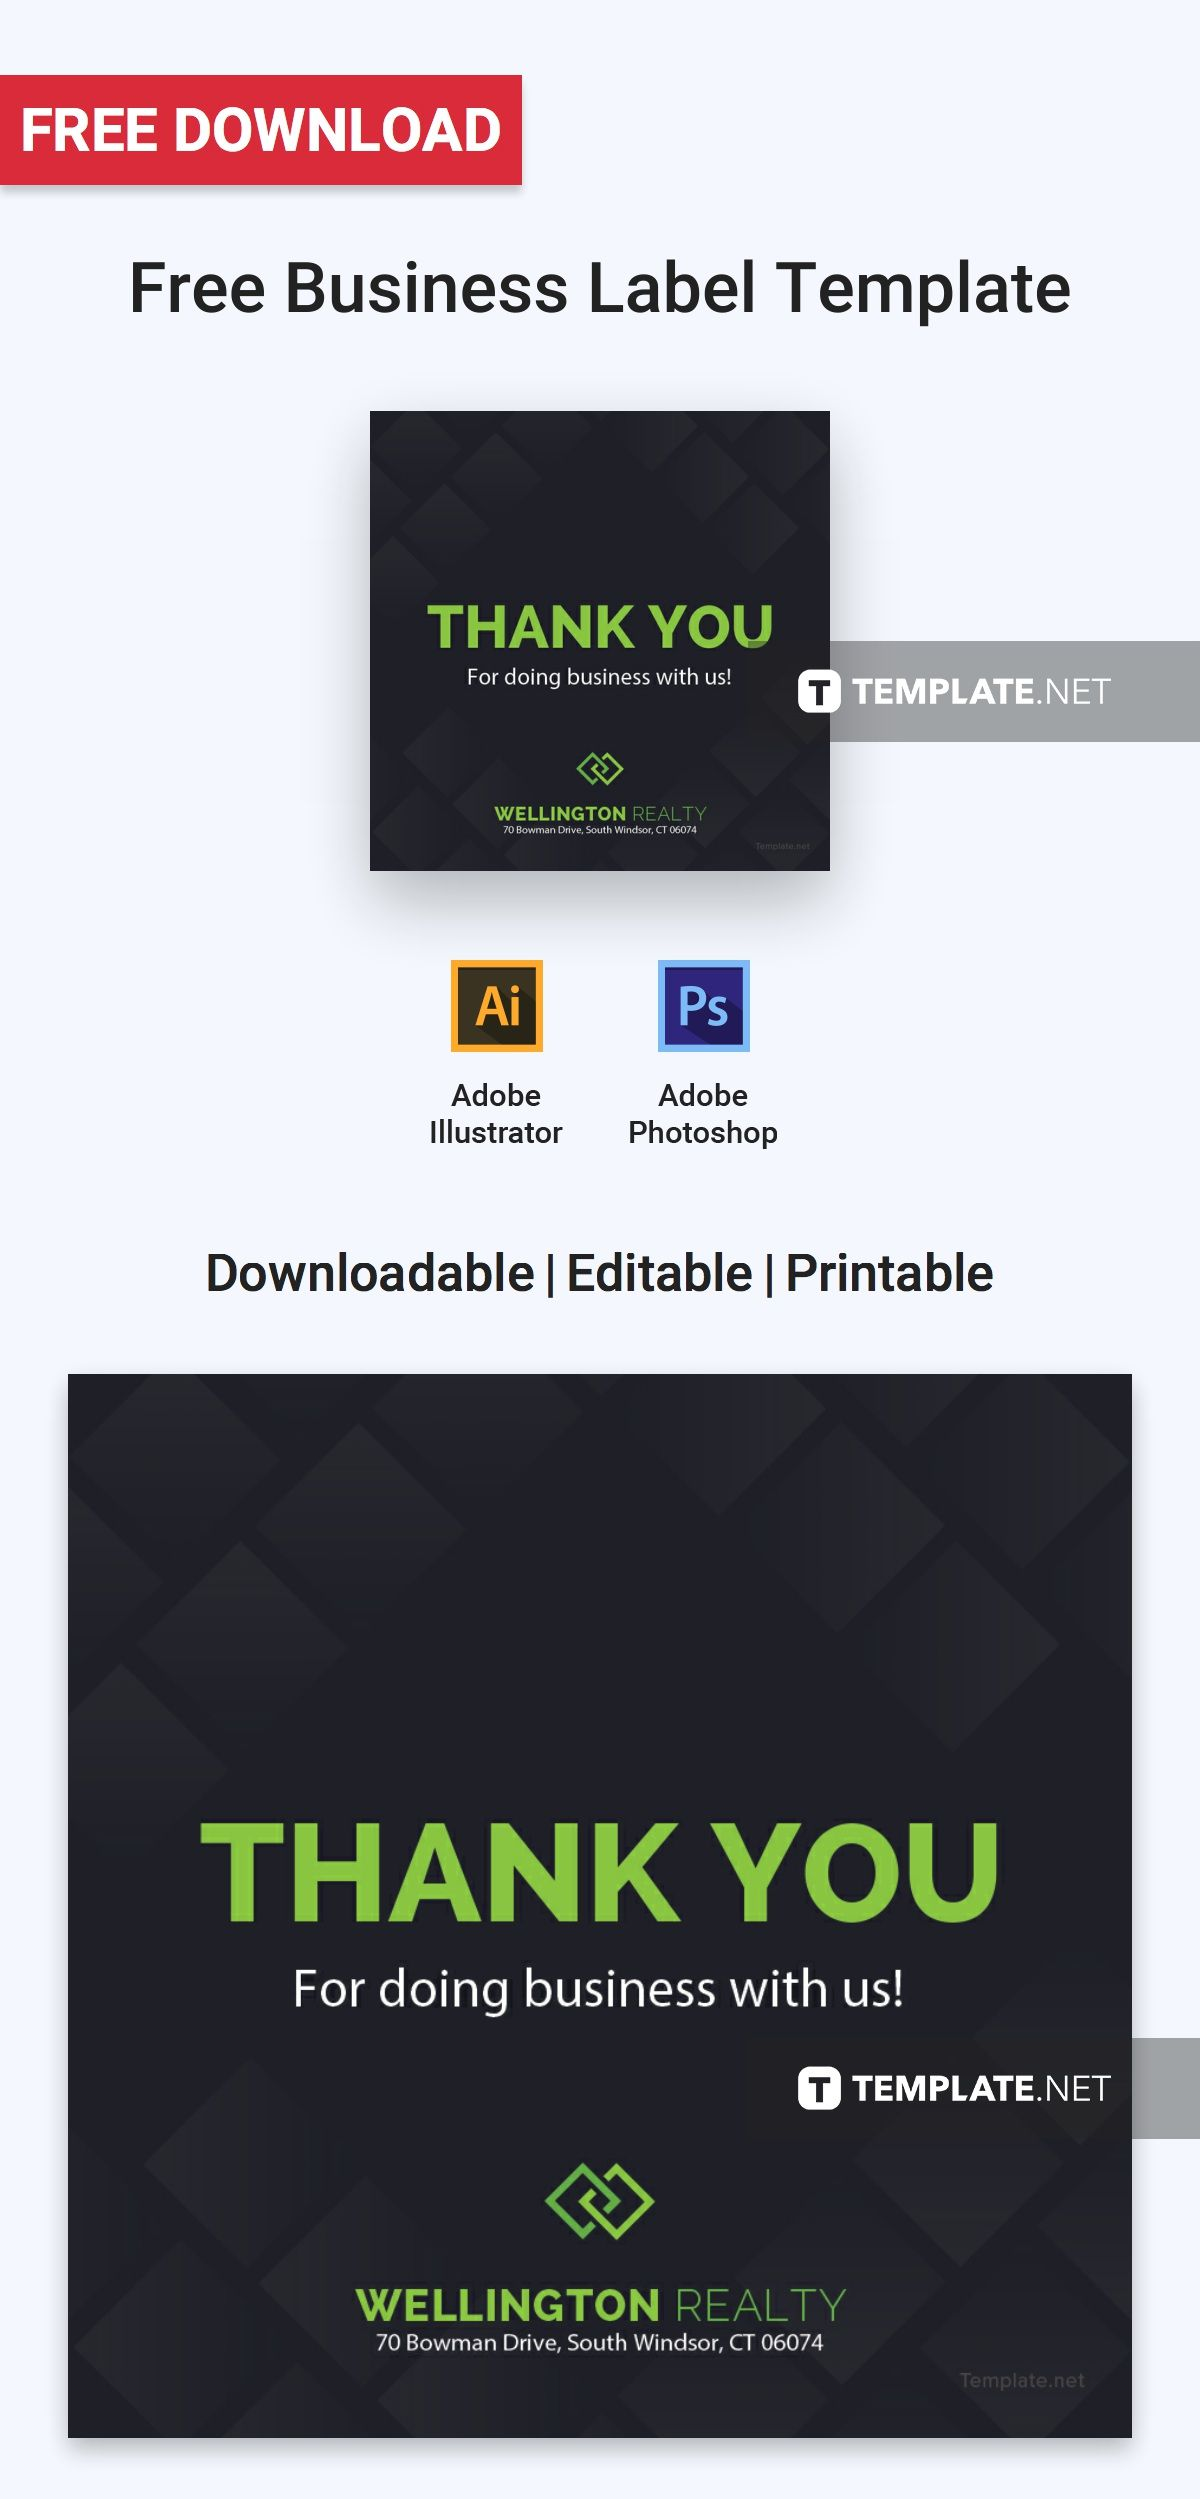 Free business label free label templates pinterest label free business label free label templates pinterest label templates free label templates and templates cheaphphosting Images